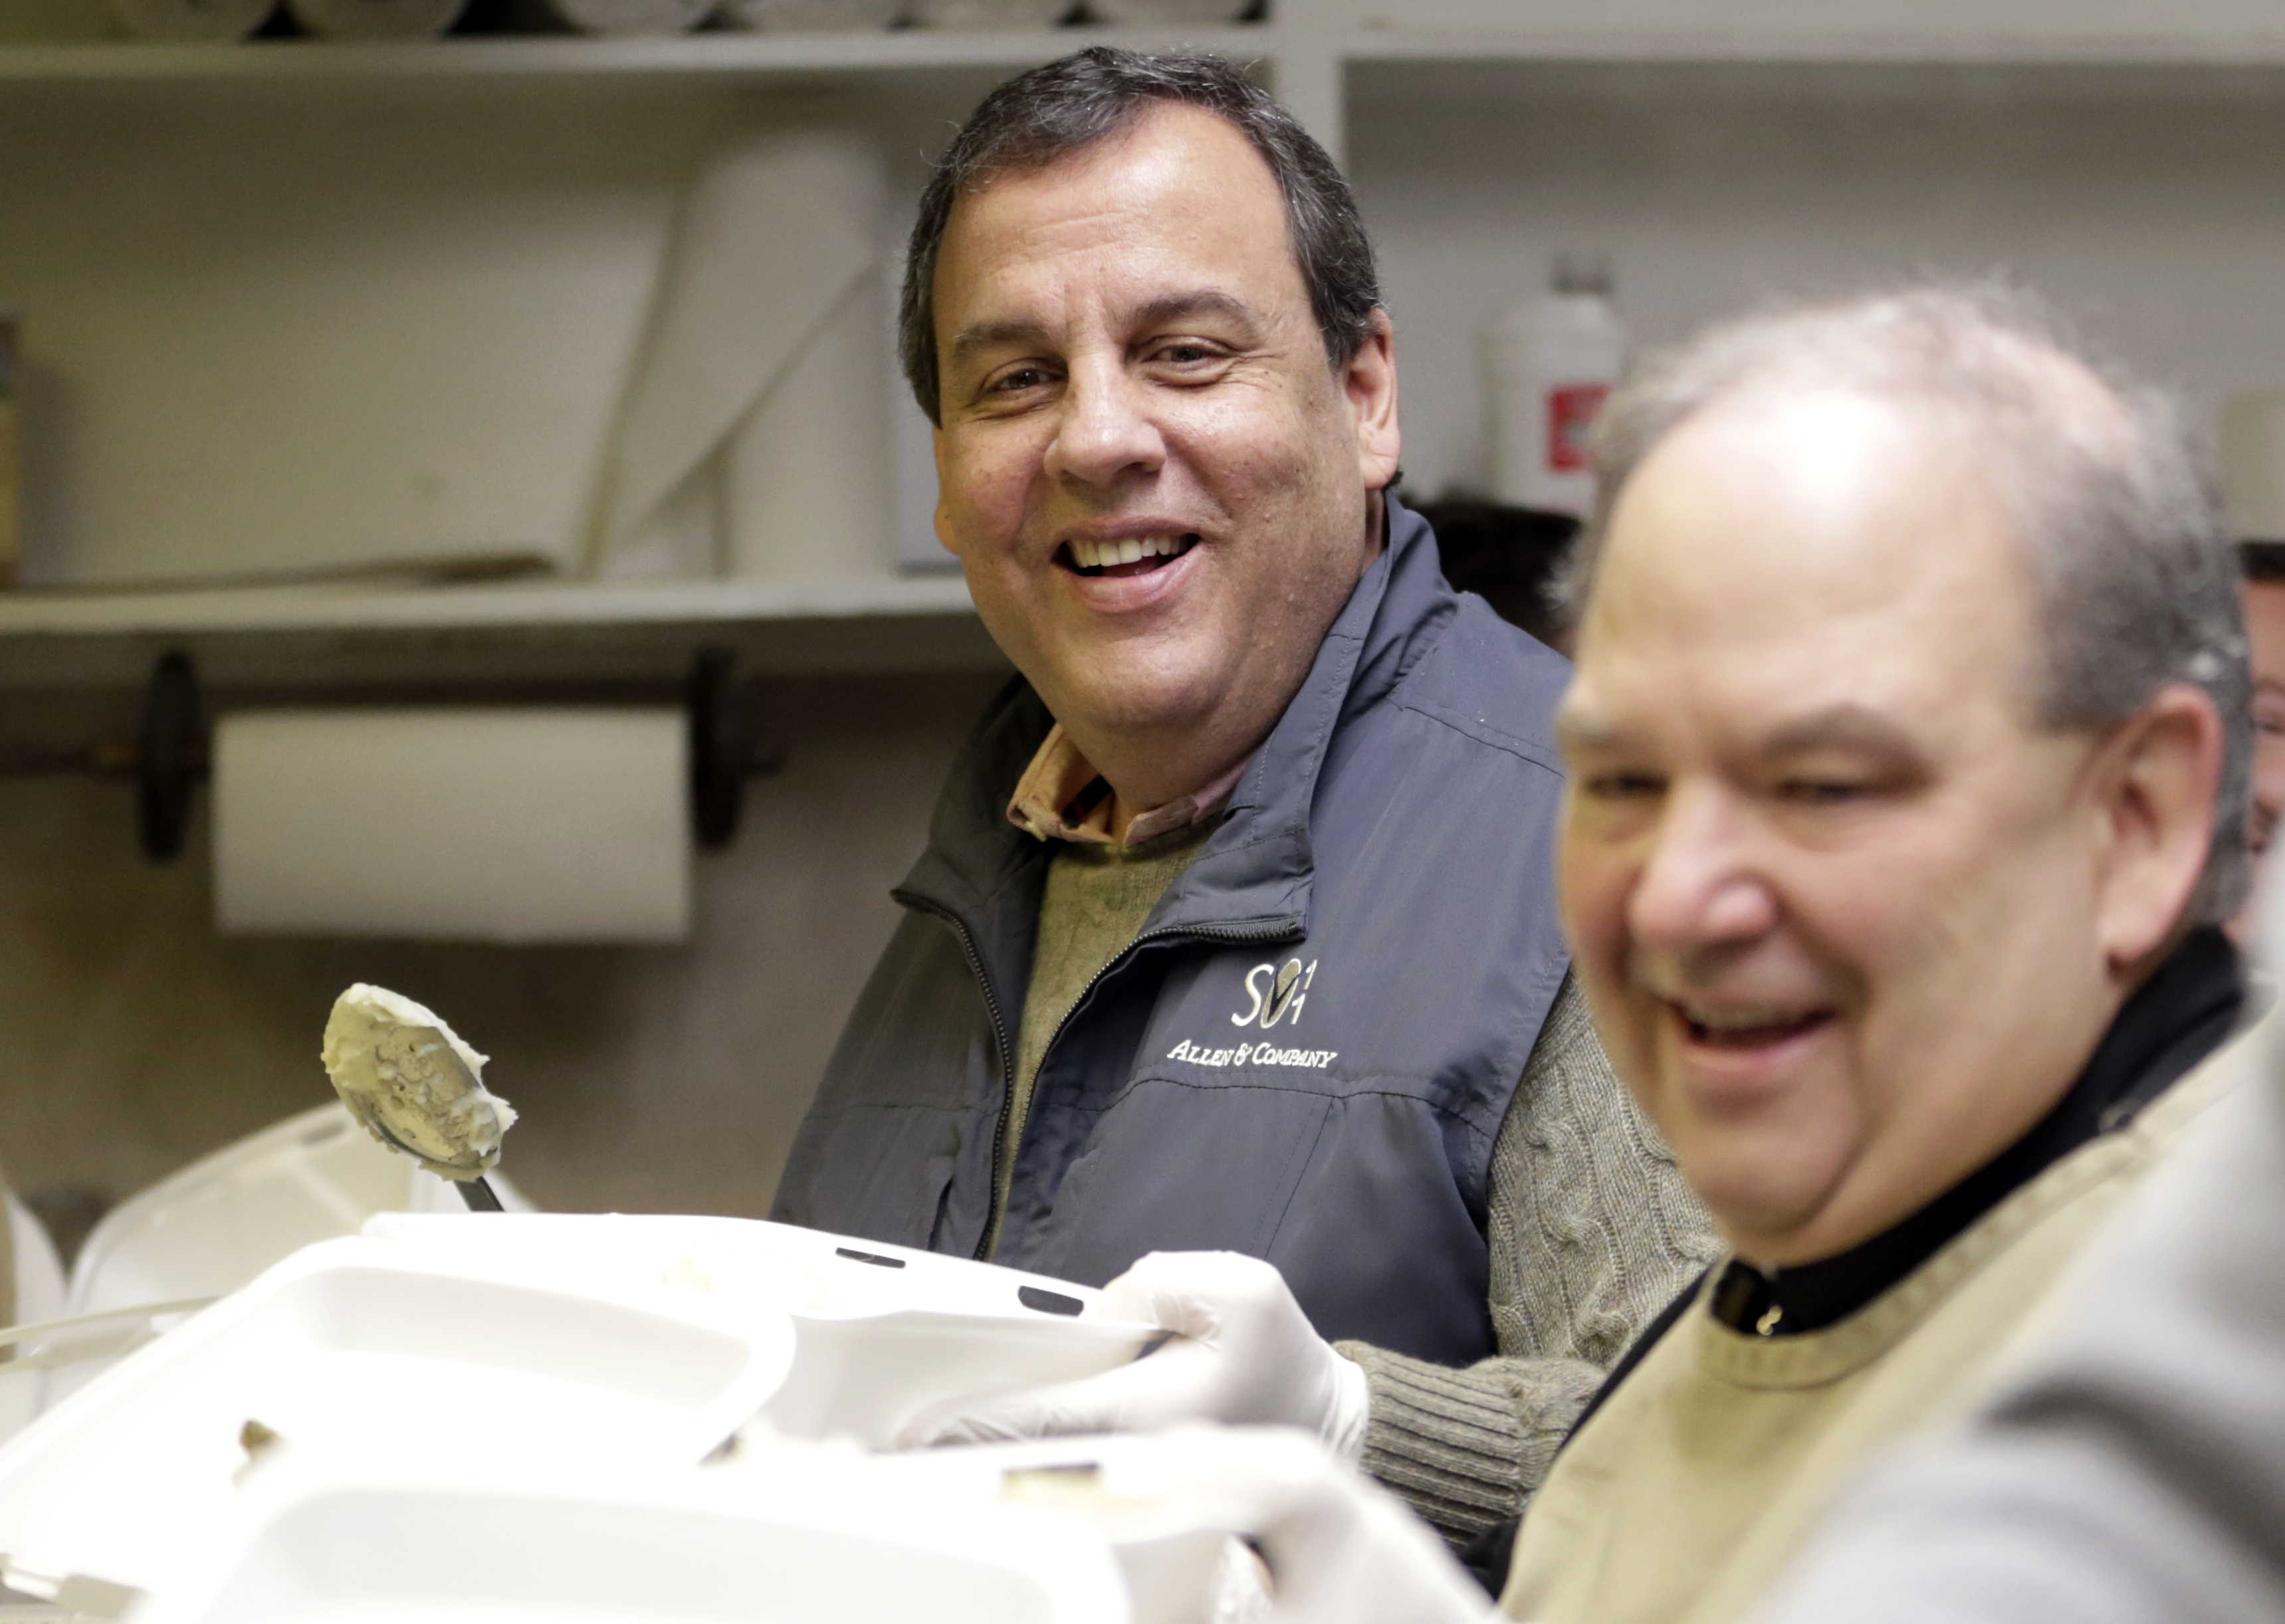 newark nj christie tells what goes into his mashed potatoes